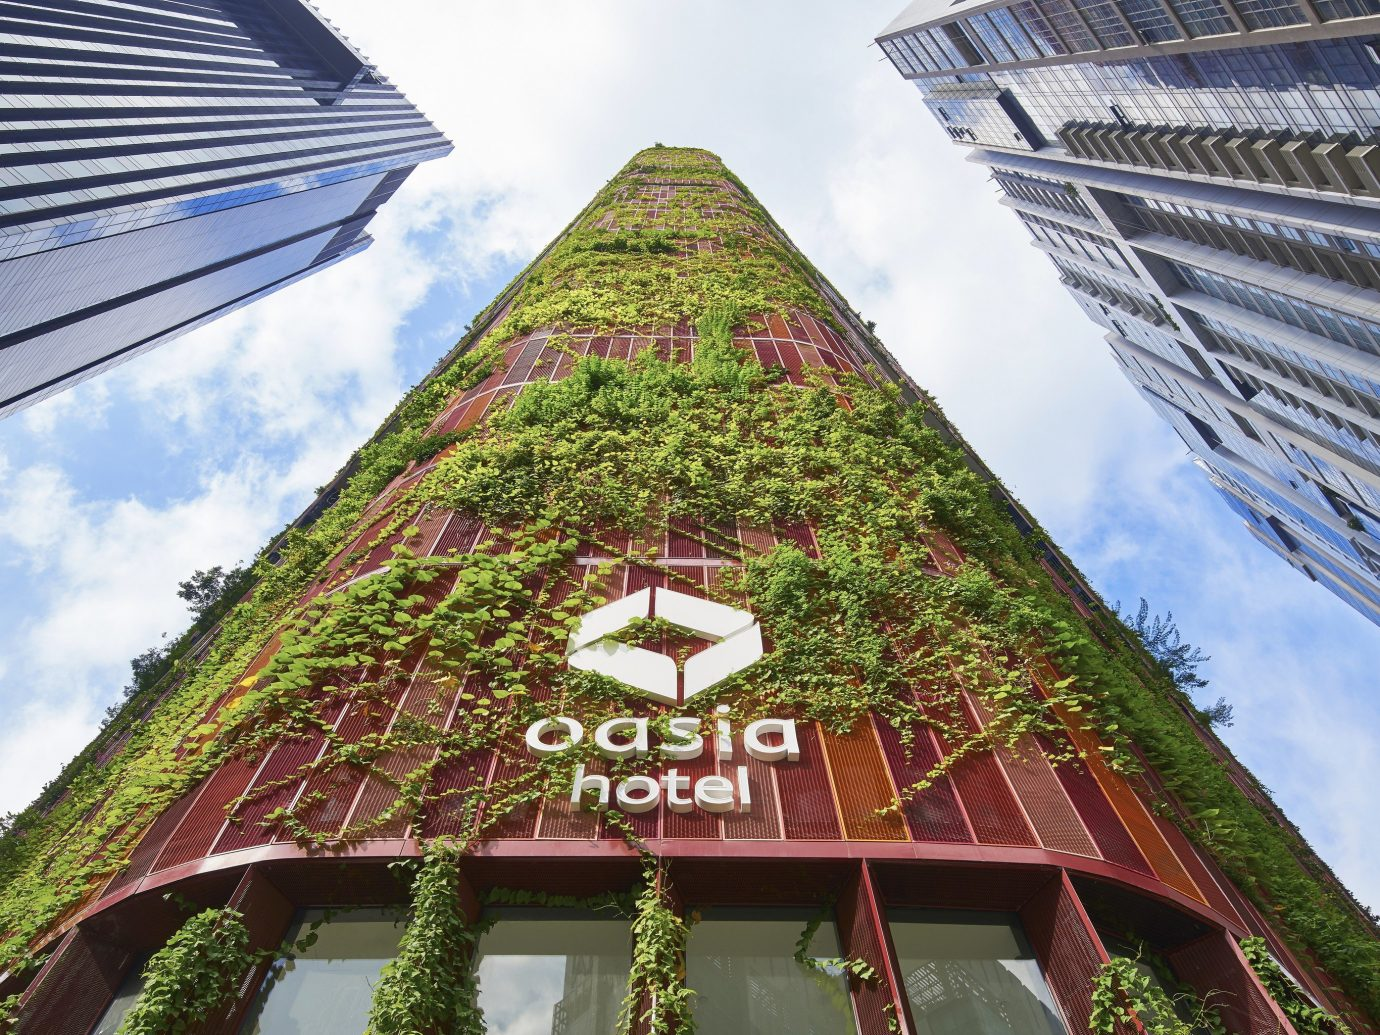 Hotels sky outdoor landmark building Architecture tourism tower place of worship stadium wat temple